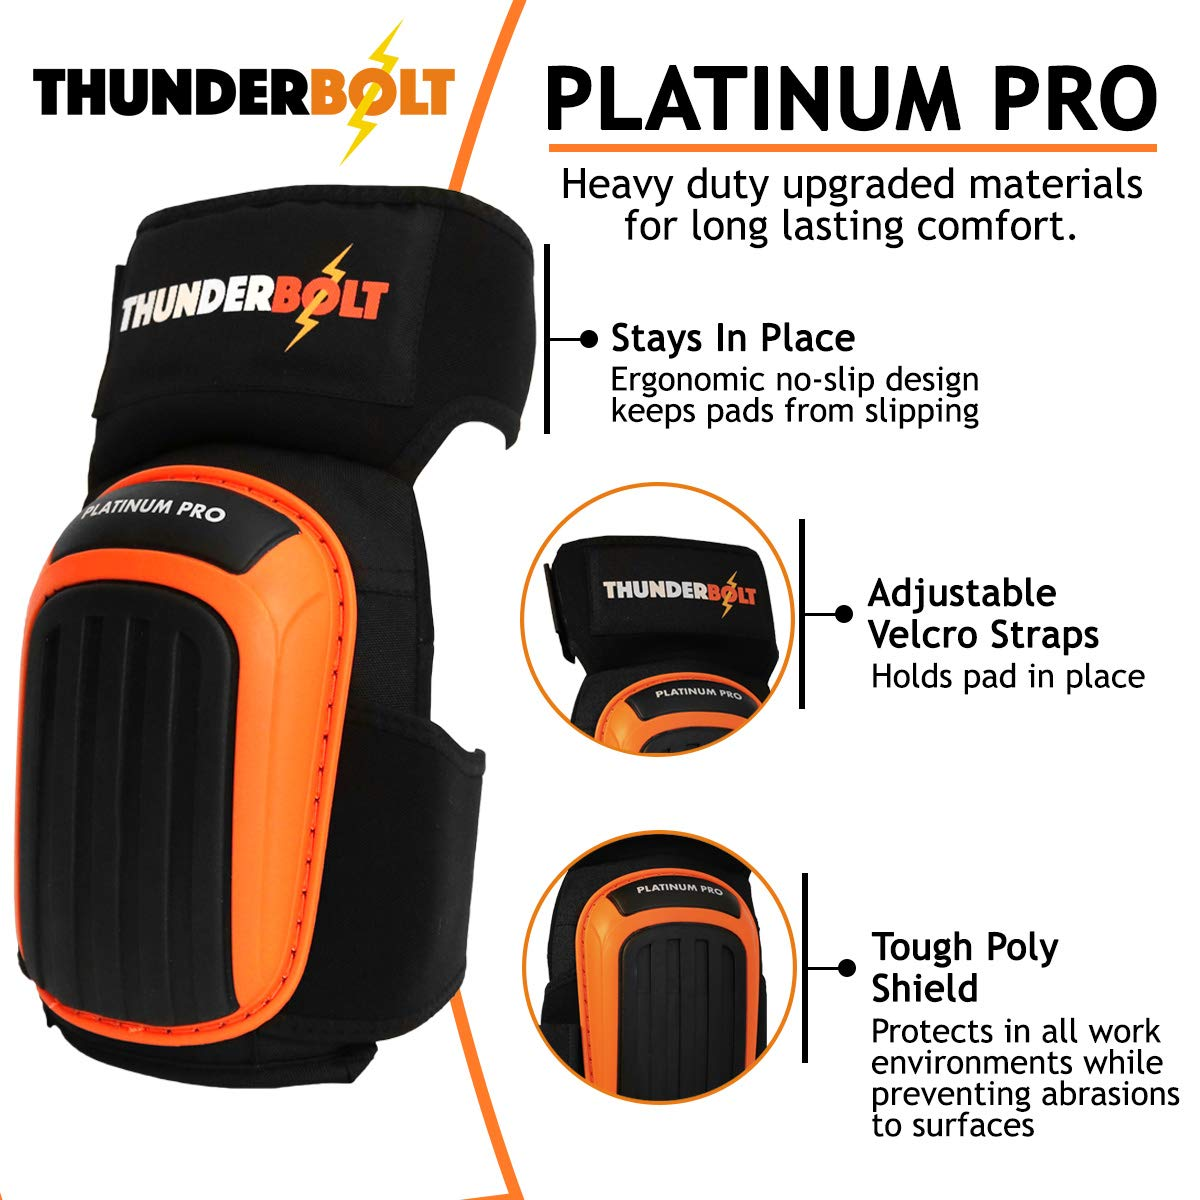 Knee Pads for Work by Thunderbolt with Heavy Duty Foam Cushioning and Gel Cushion Perfect for Construction, Flooring and Gardening with Adjustable Anti-Slip Straps by Thunderbolt (Image #4)